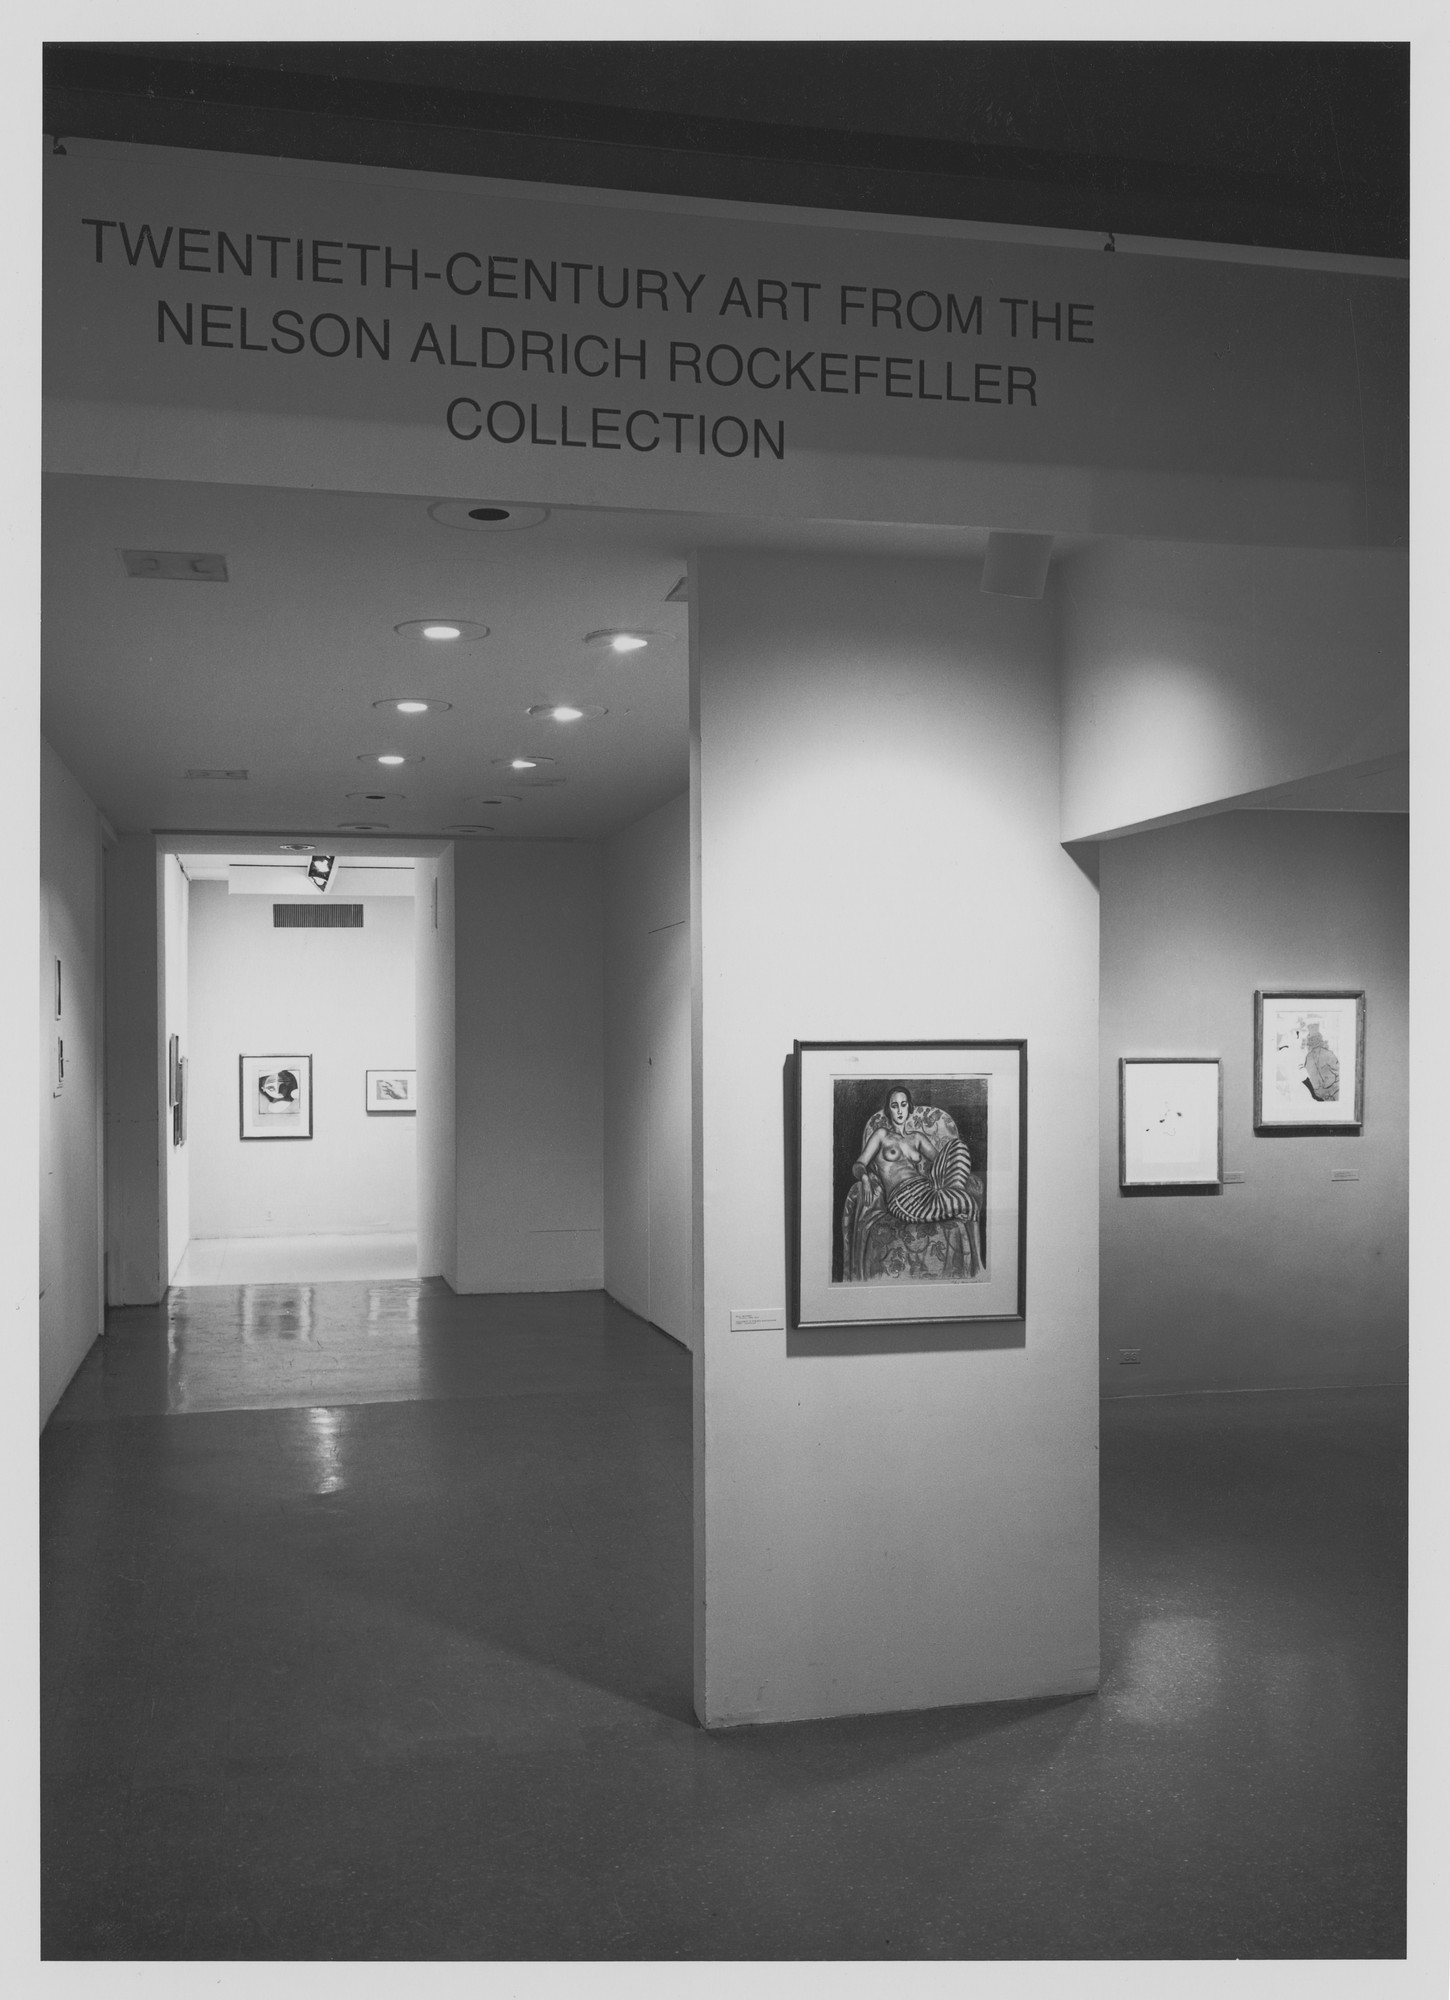 "Installation view of the exhibition, ""Twentieth-Century Art from the Nelson Aldrich Rockefeller Collection"" May 28, 1969–September 1, 1969. Photographic Archive. The Museum of Modern Art Archives, New York. IN892.1. Photograph by James Mathews."